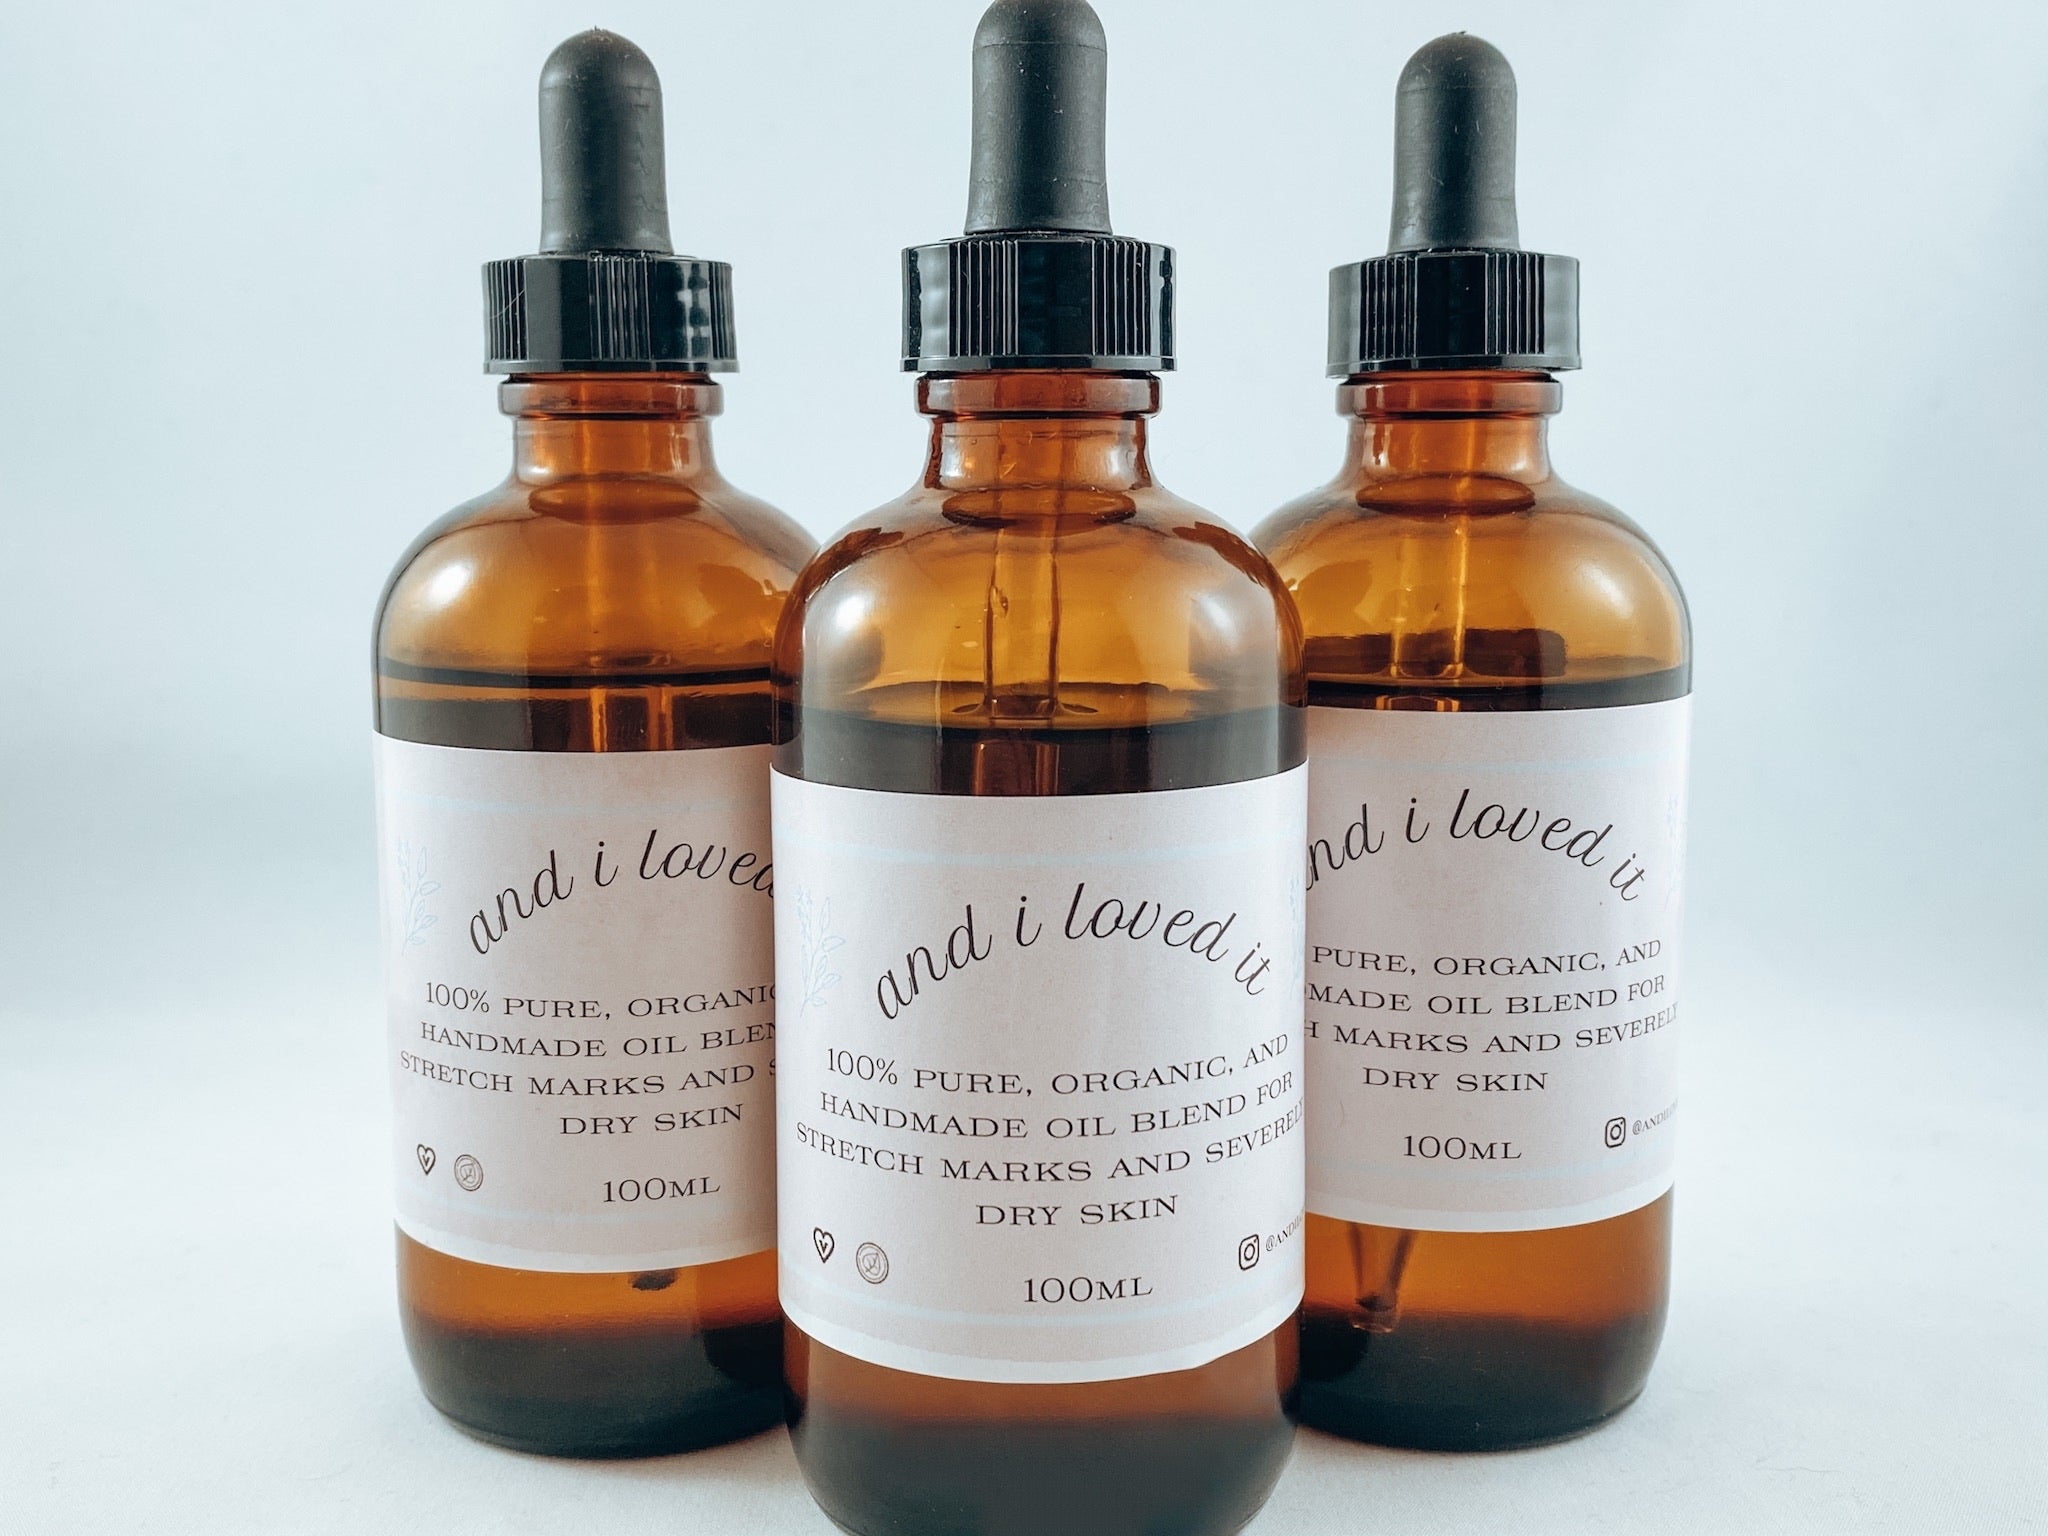 Organic oil blend for stretch marks and dry skin